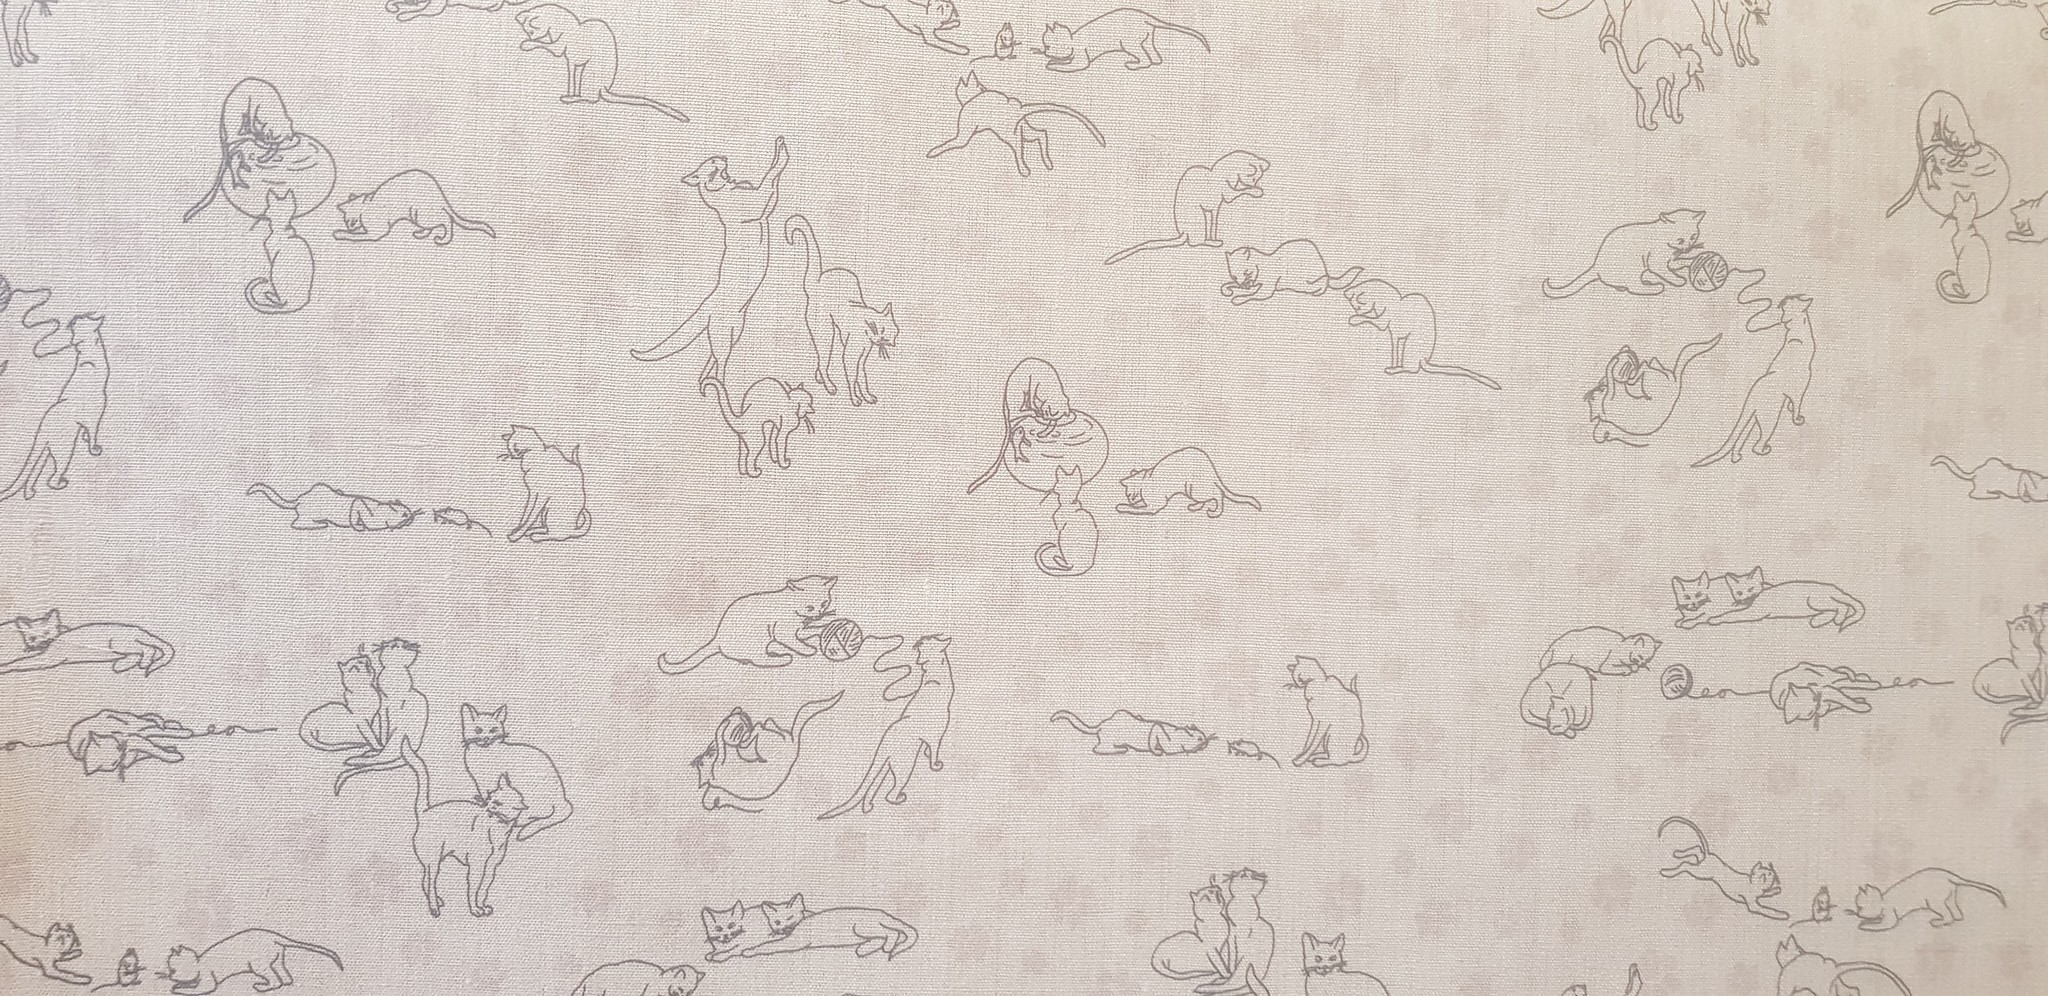 Le grenier du lin Grey fabric with kittens